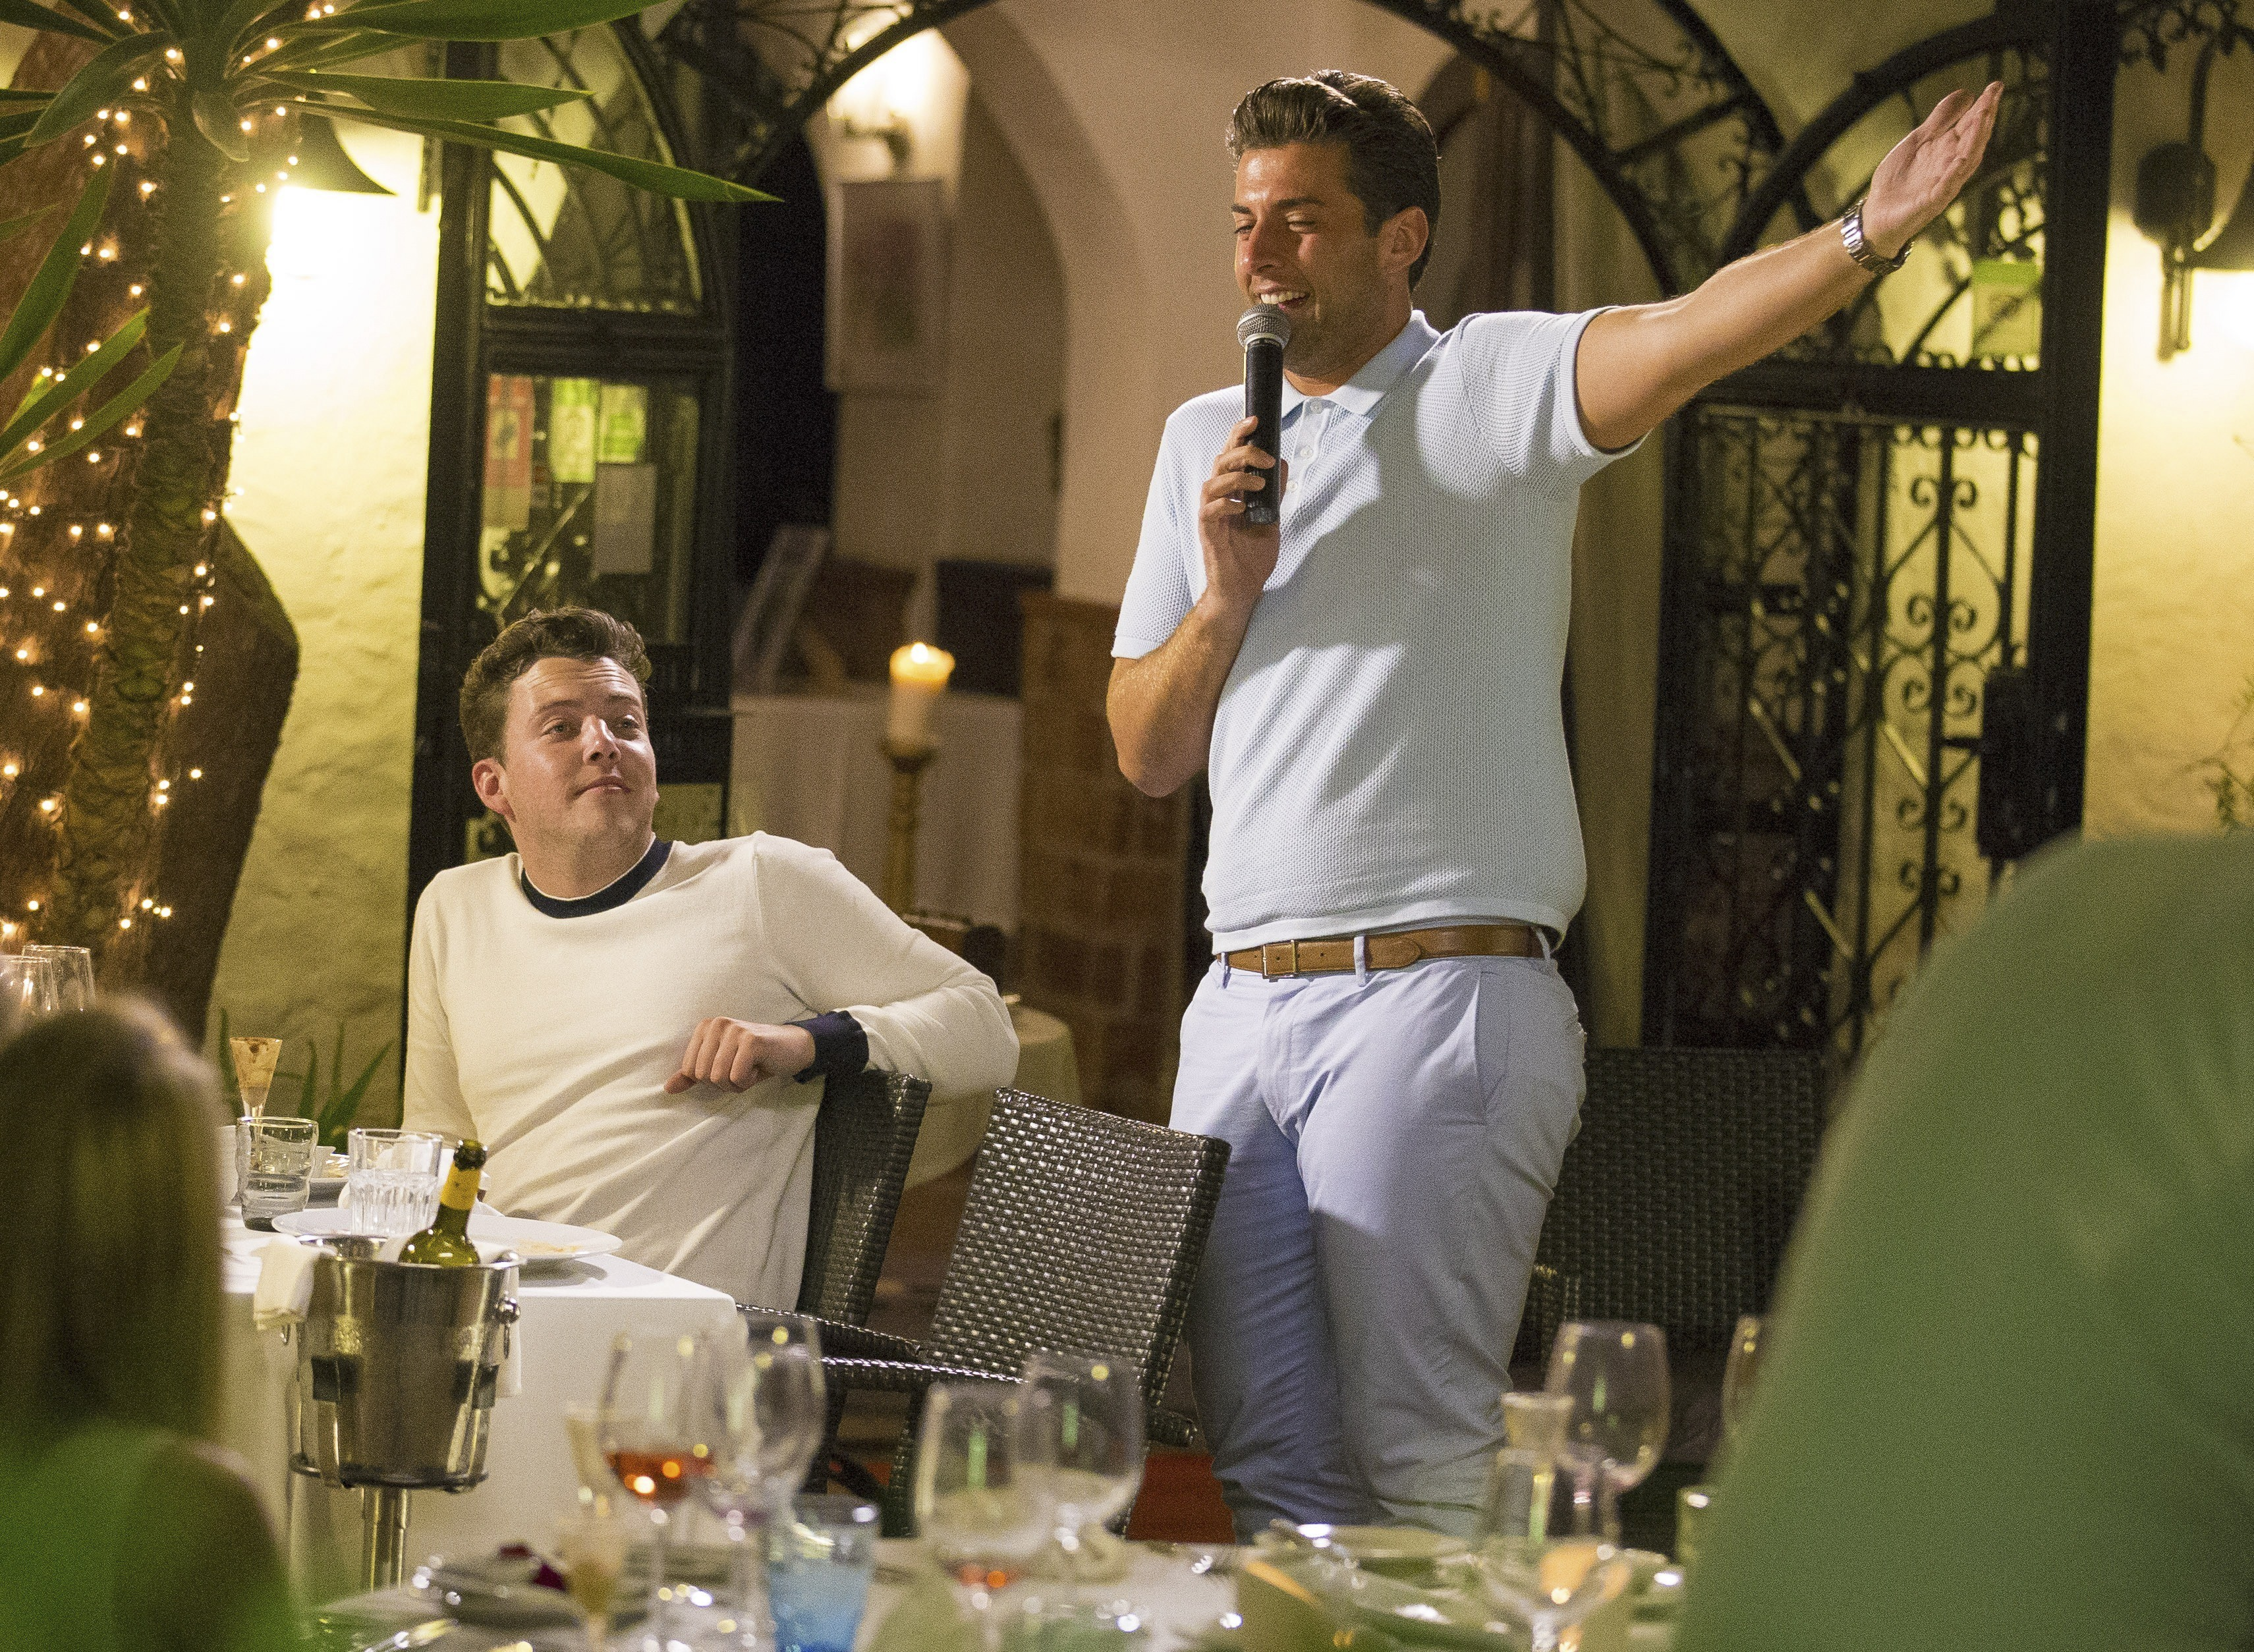 TOWIE's James Argent serenades on-off girlfriend Lydia Bright after tearful row in Marbella